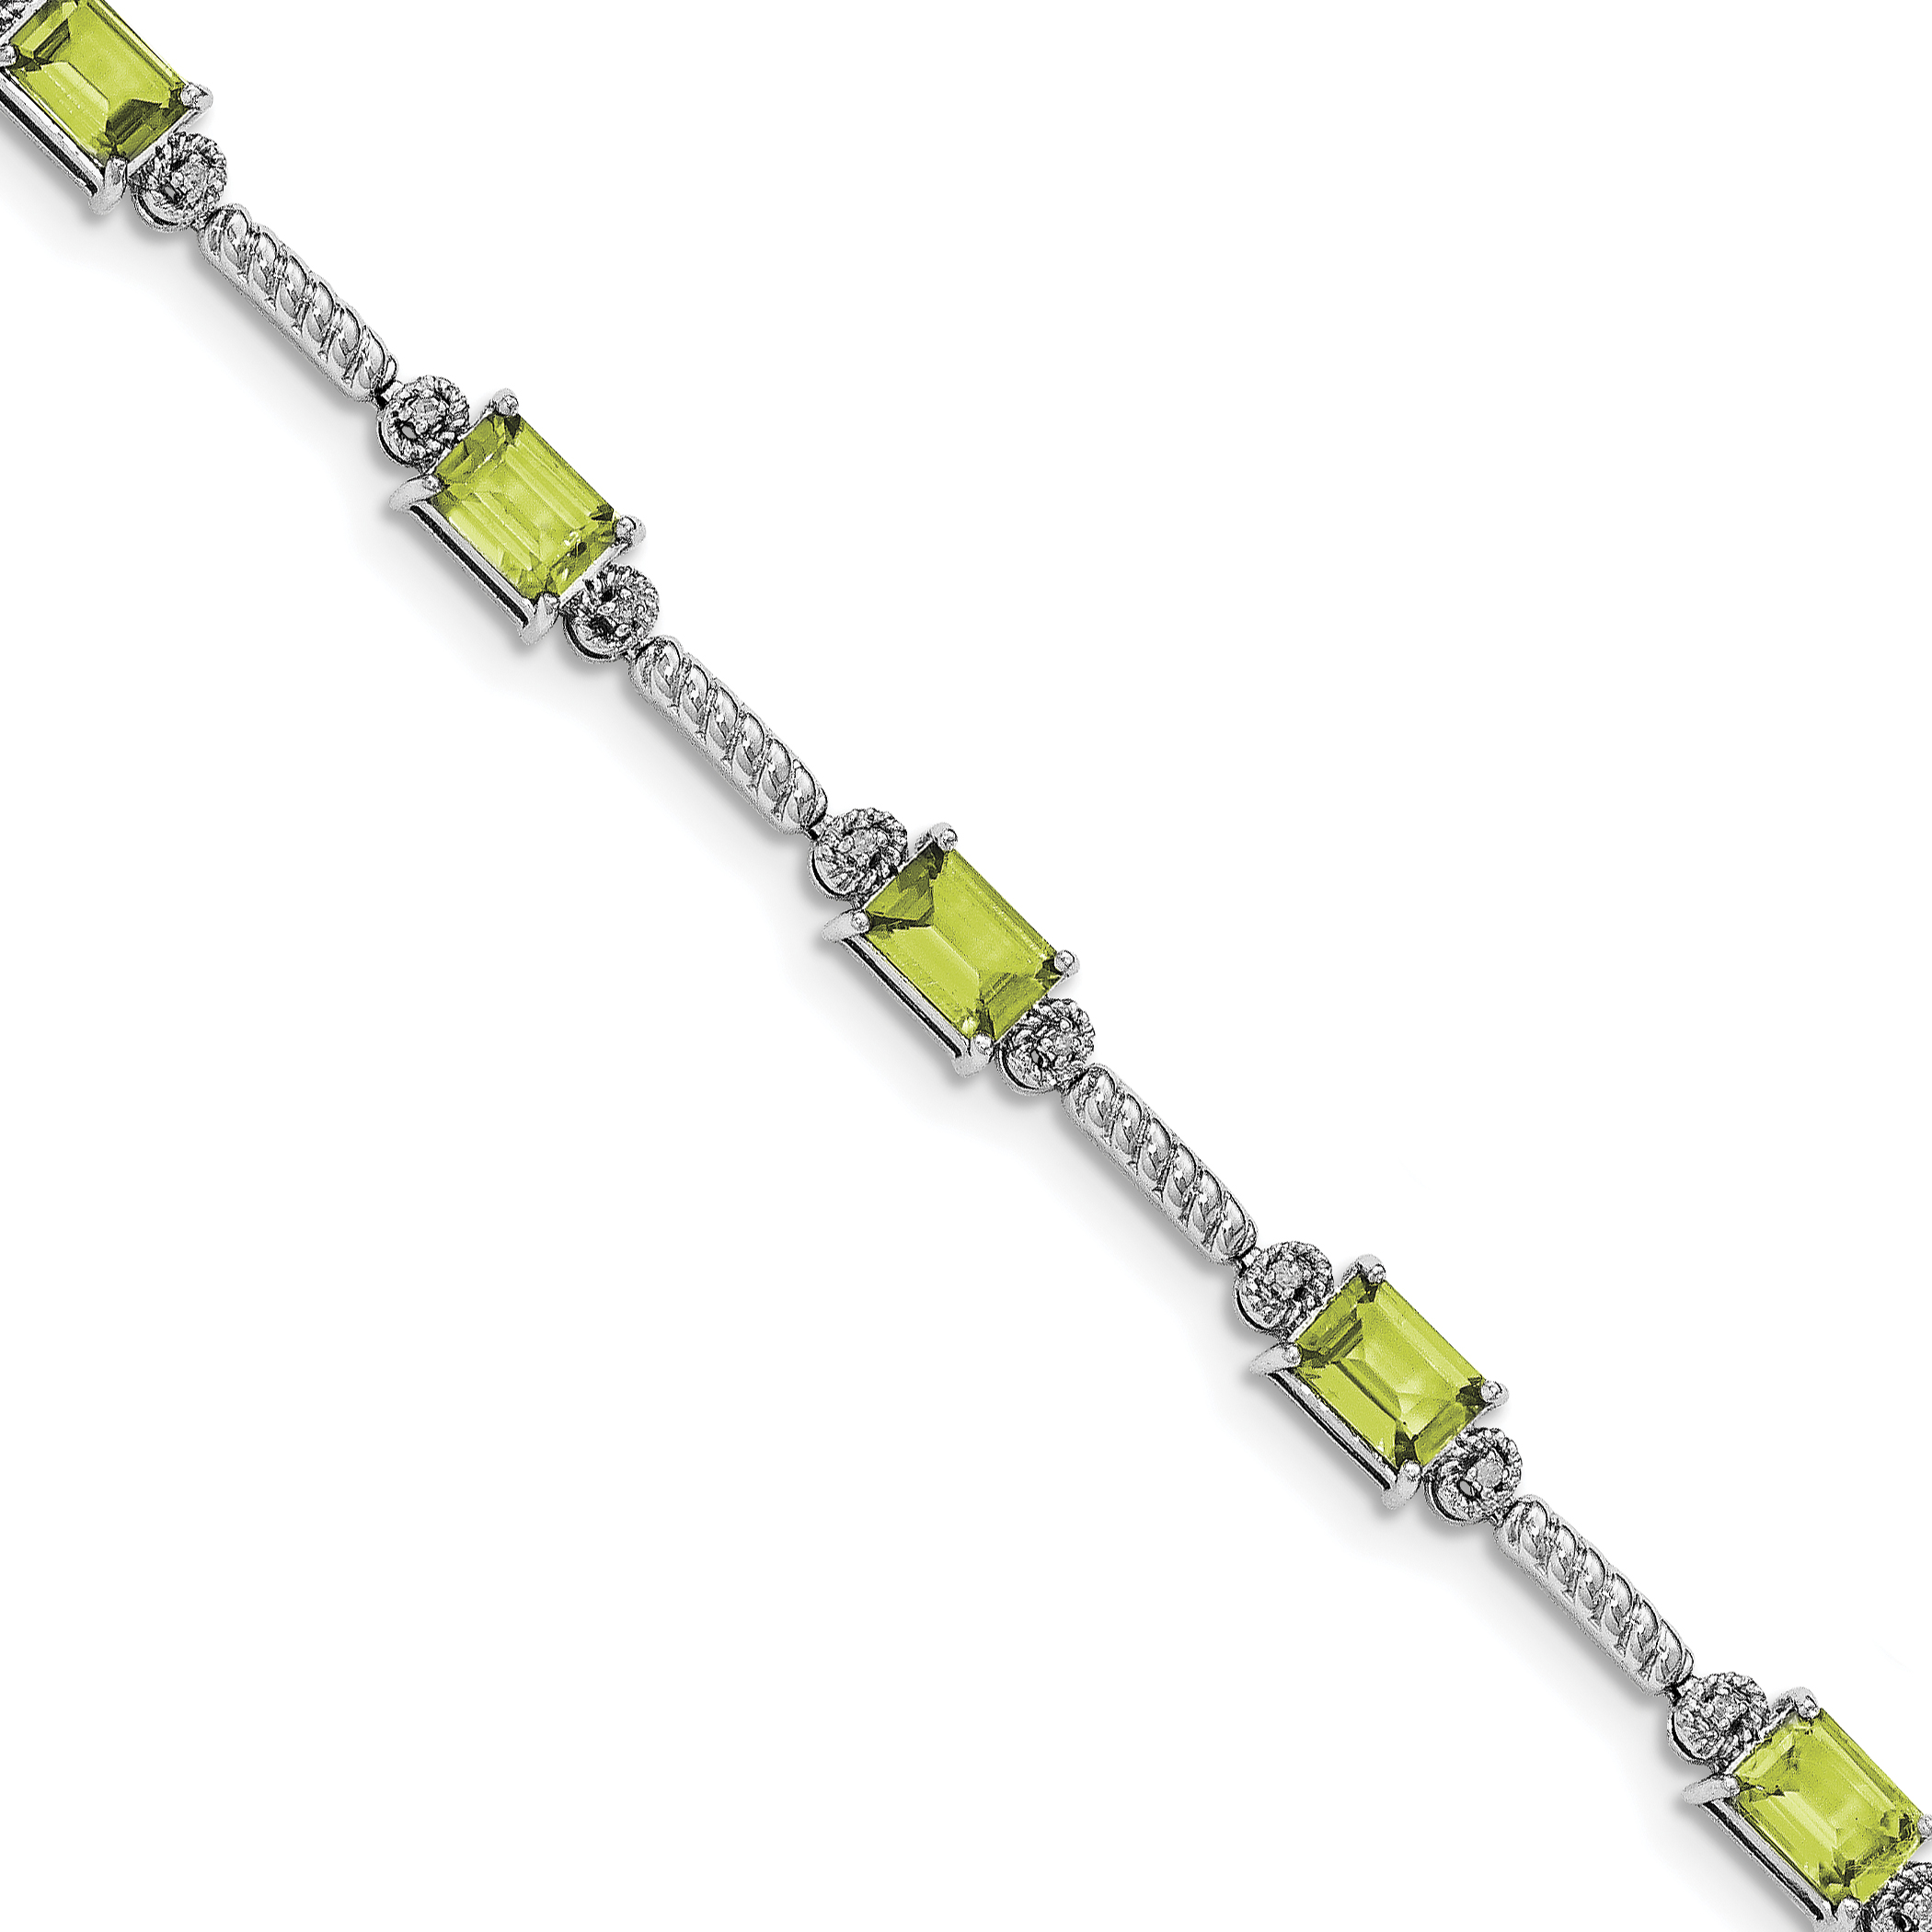 Sterling Silver Rhodium-plated Peridot & Diamond Bracelet QX947PE by Core Silver